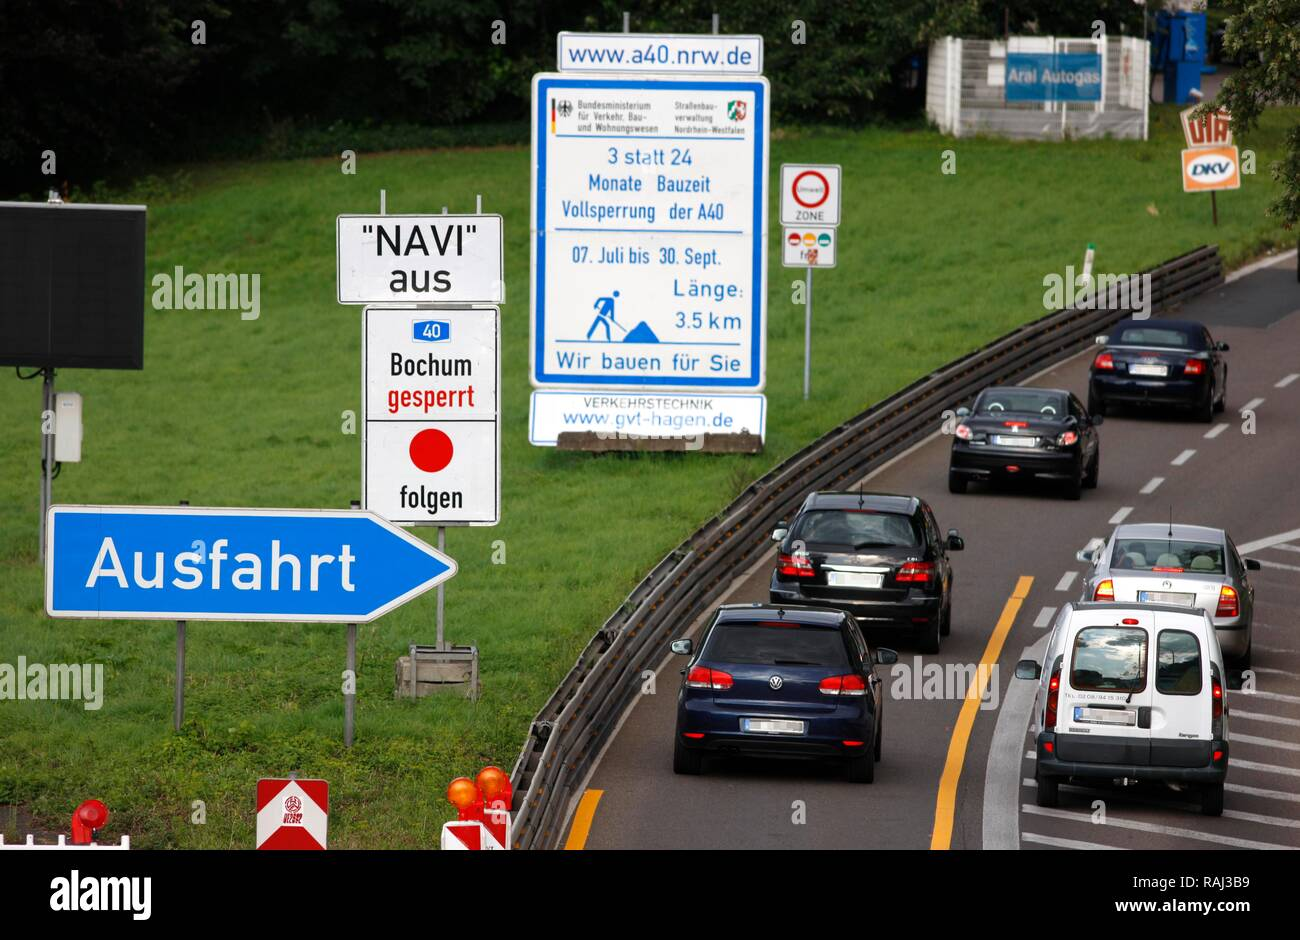 Sign 'Navi aus' or 'no navigation', note that navigation equipment won't show the correct redirections during the 3-month - Stock Image